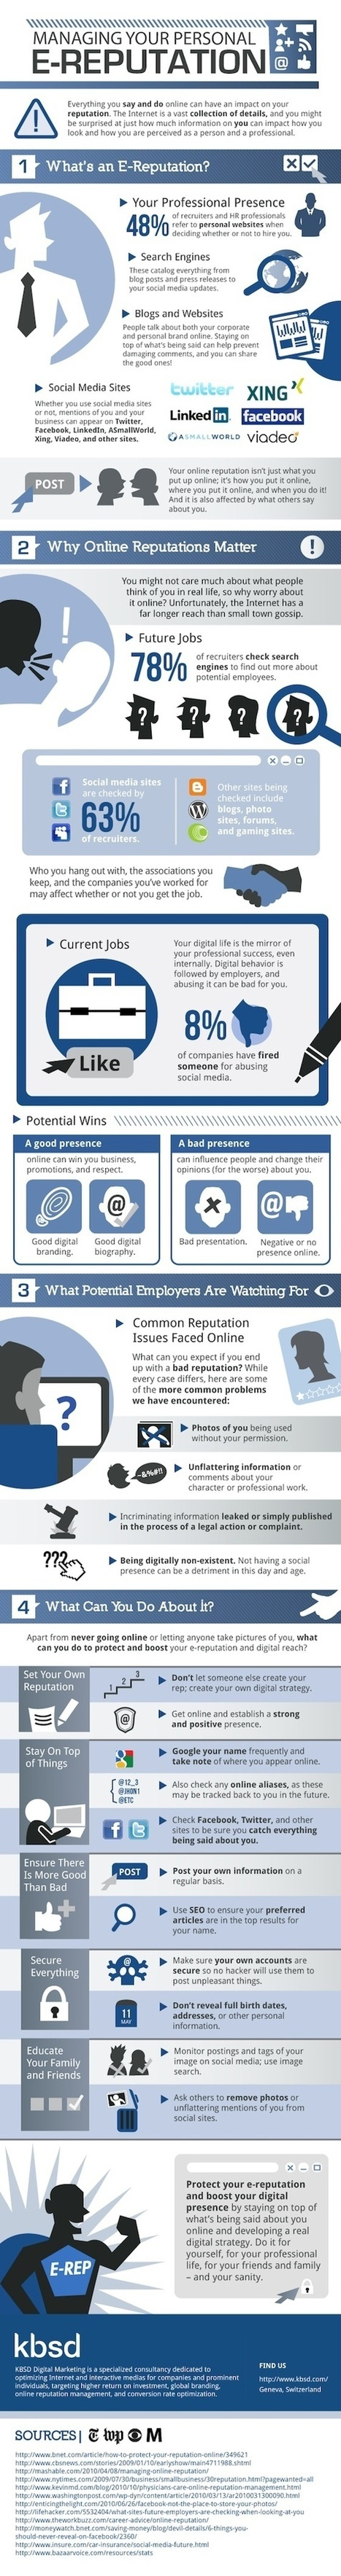 Managing Your Personal E-Reputation - Job Search Infographics | Digital Communication, Community management and E-reputation | Scoop.it